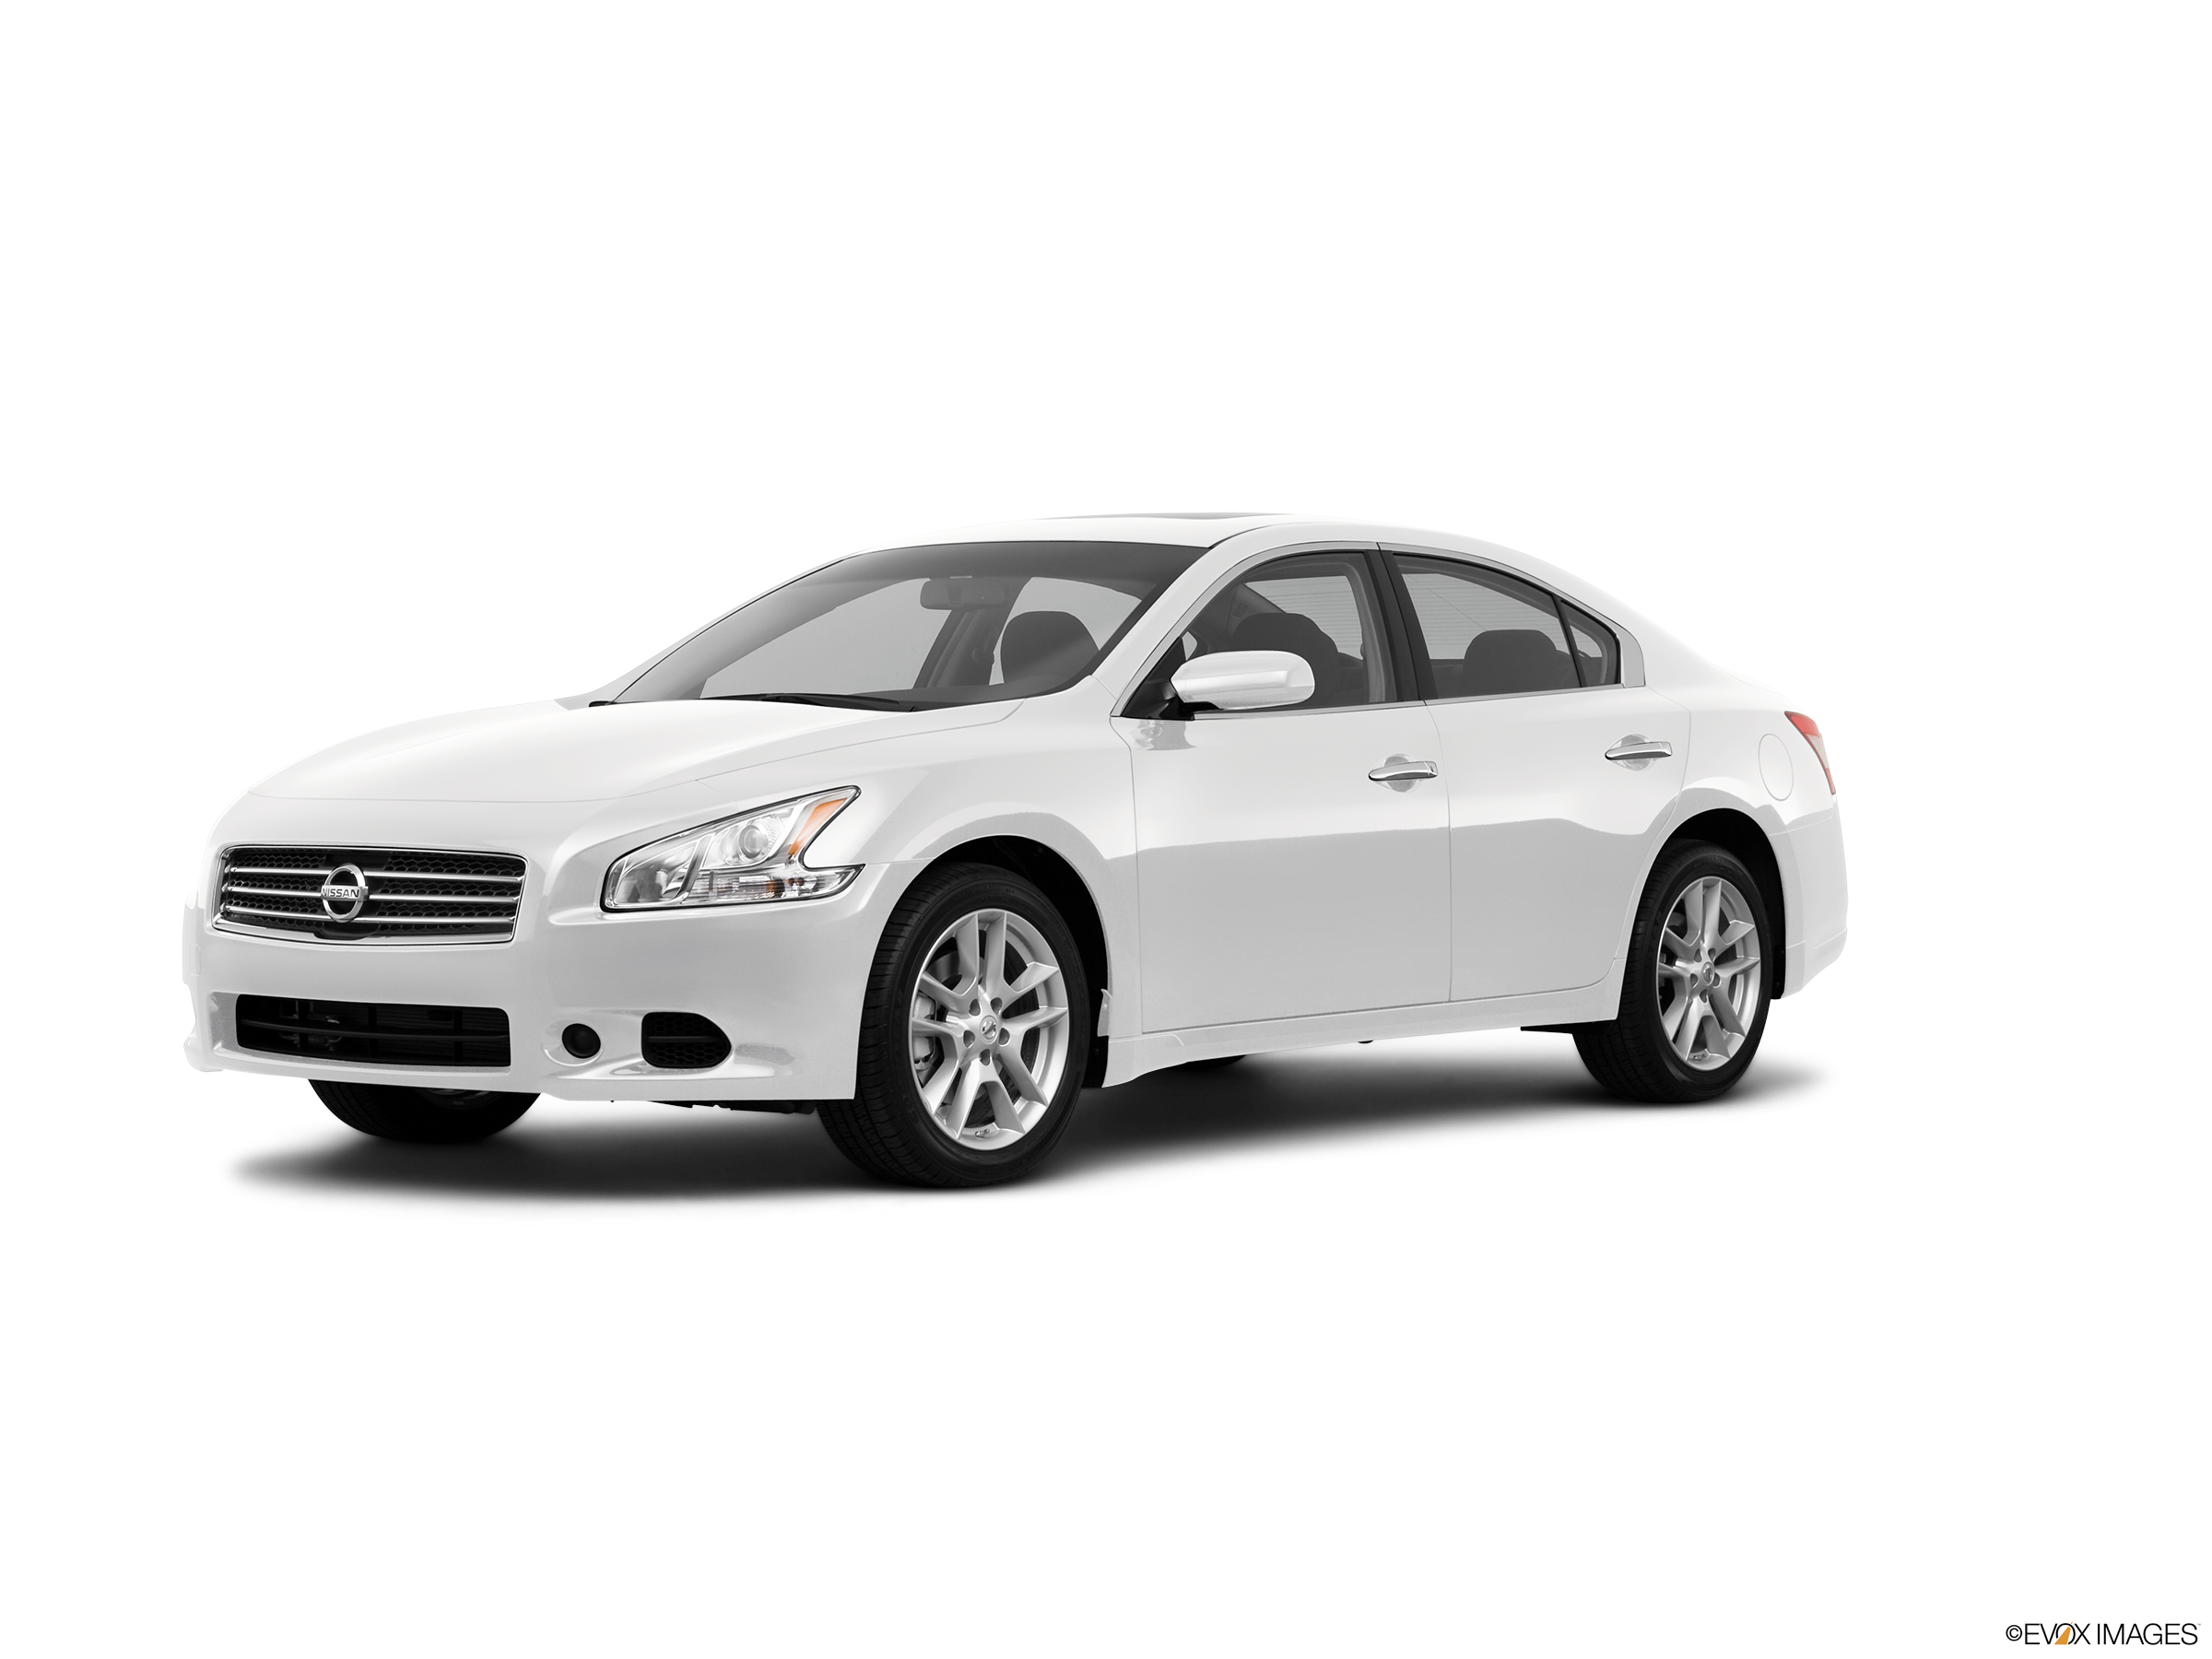 2010 Nissan Maxima Values Cars For Sale Kelley Blue Book